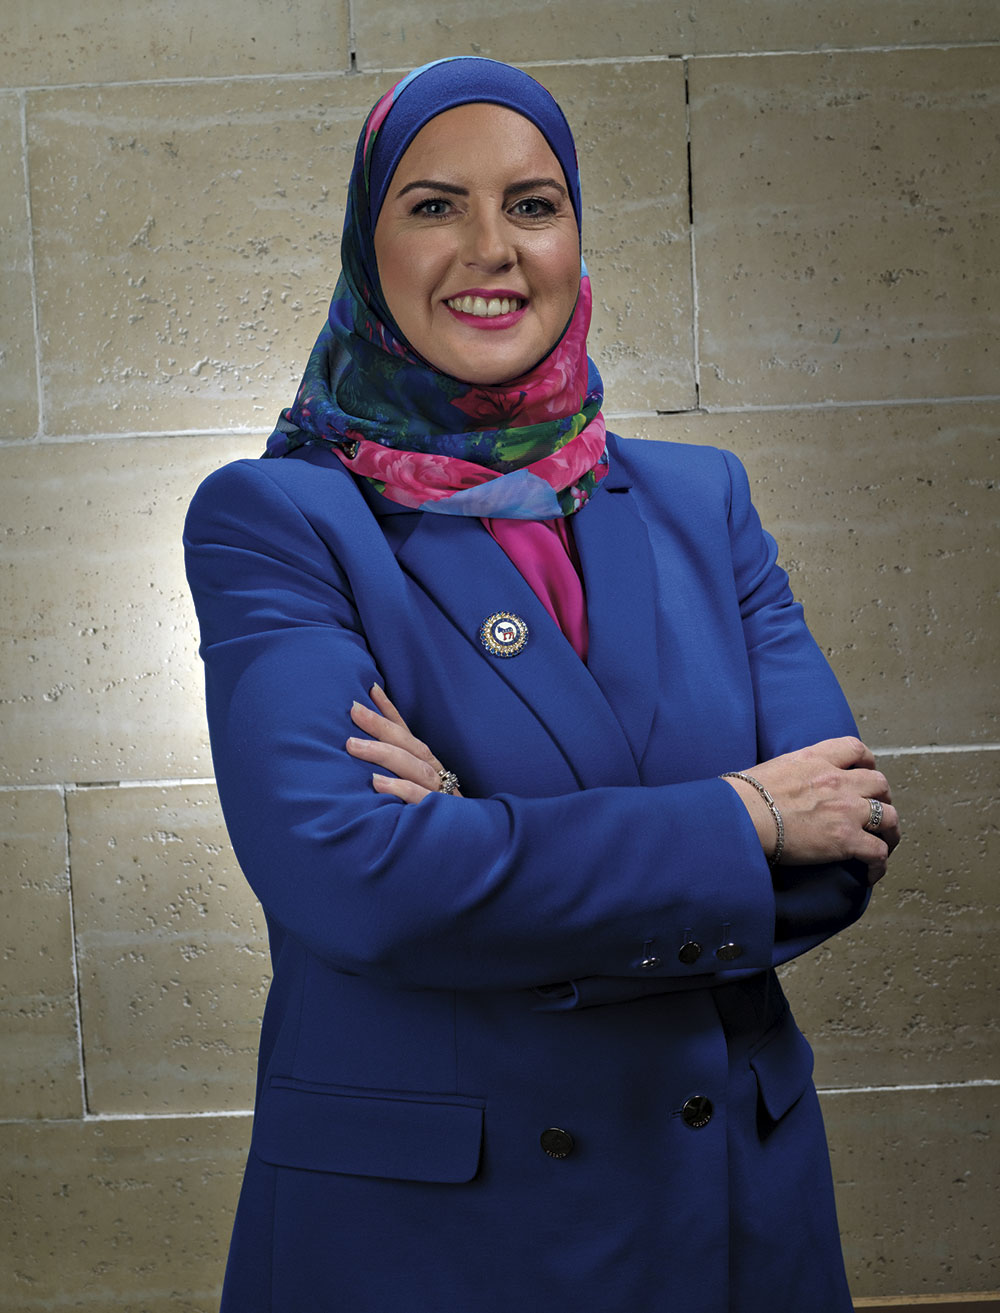 Deedra Abboud - The Activist; photo by Michael Woodall